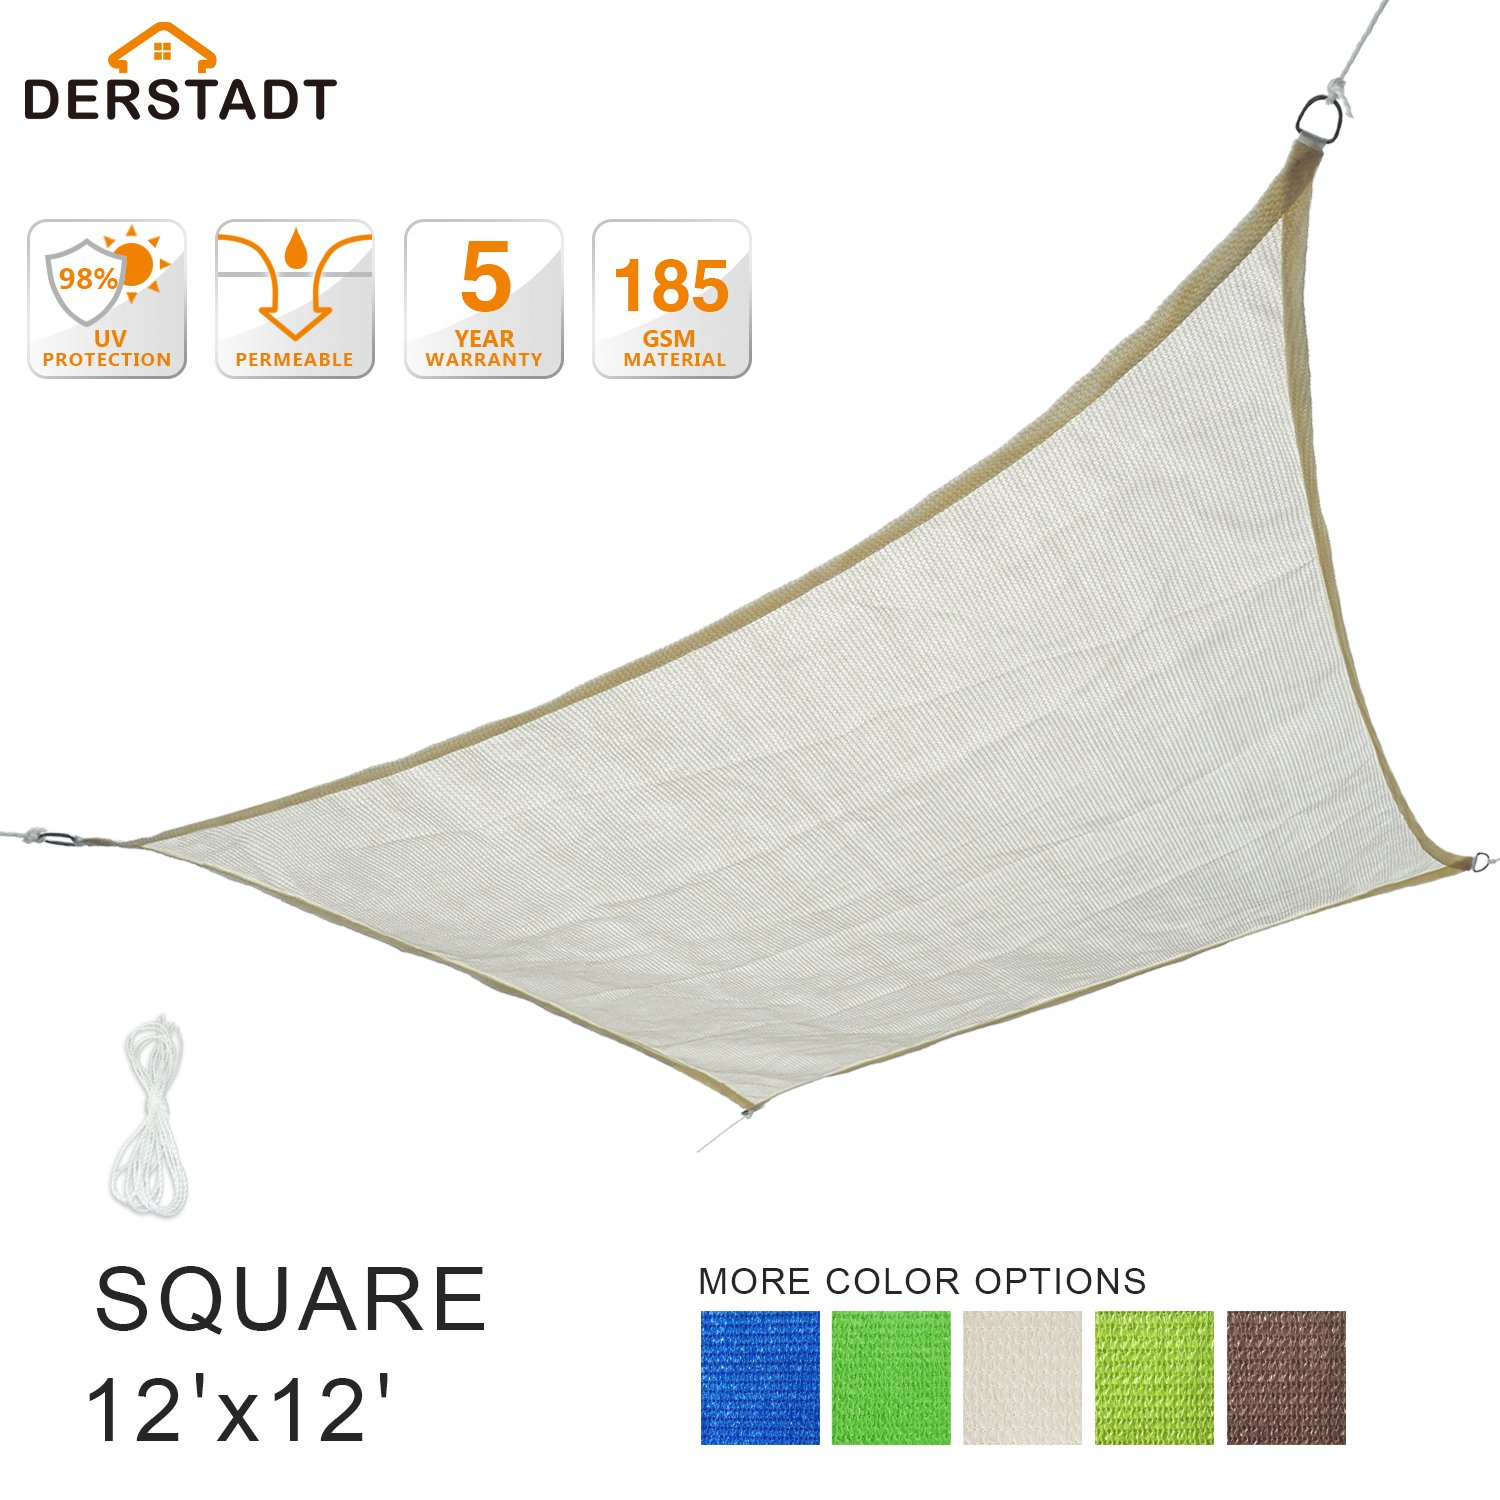 Derstadt Sun Shade Sail Outdoor Patio Canopy Backyard, Square